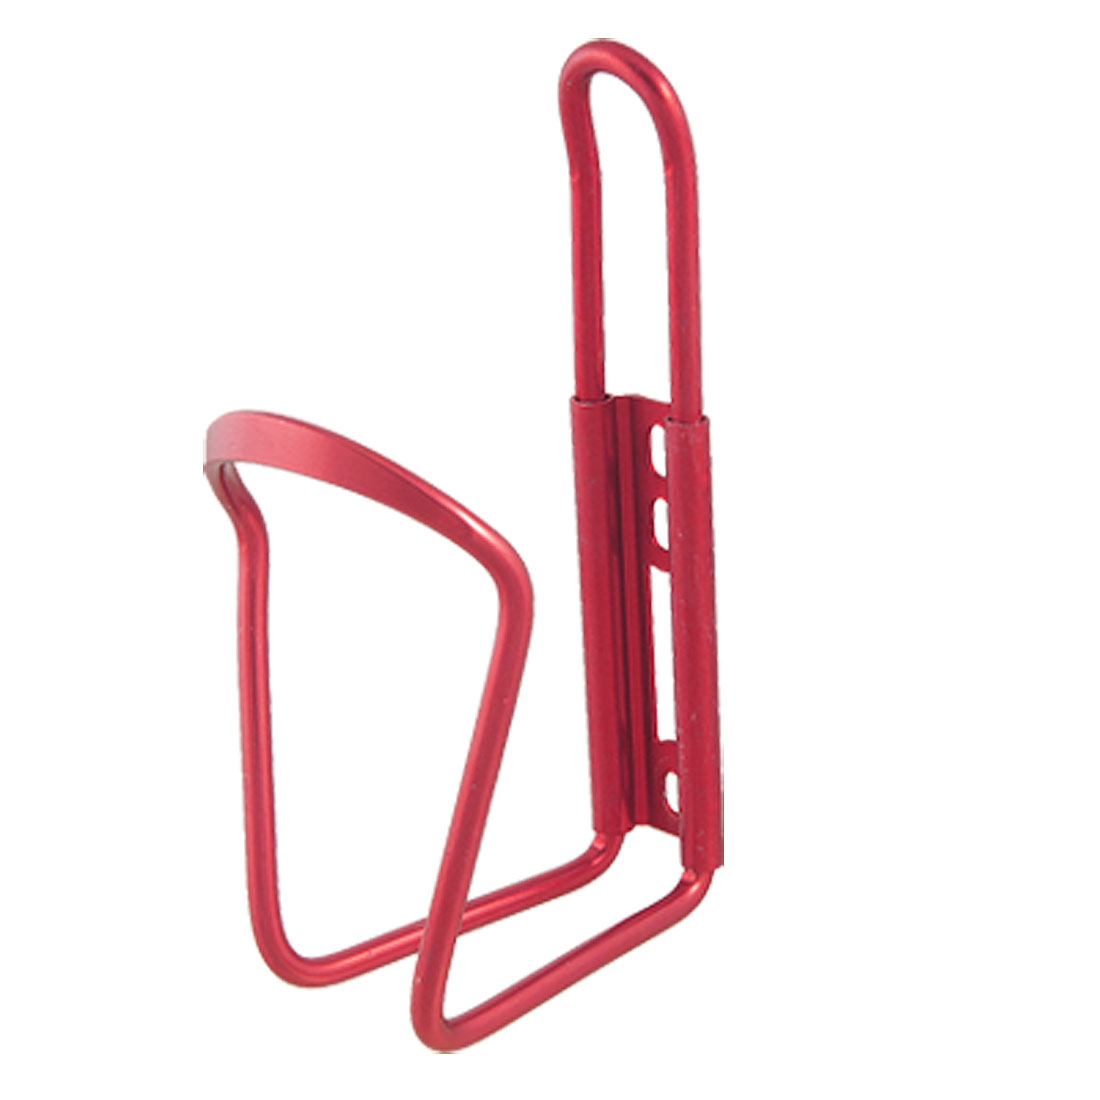 Burgundy Aluminum Bottle Rack Holder for Bike Bicycle